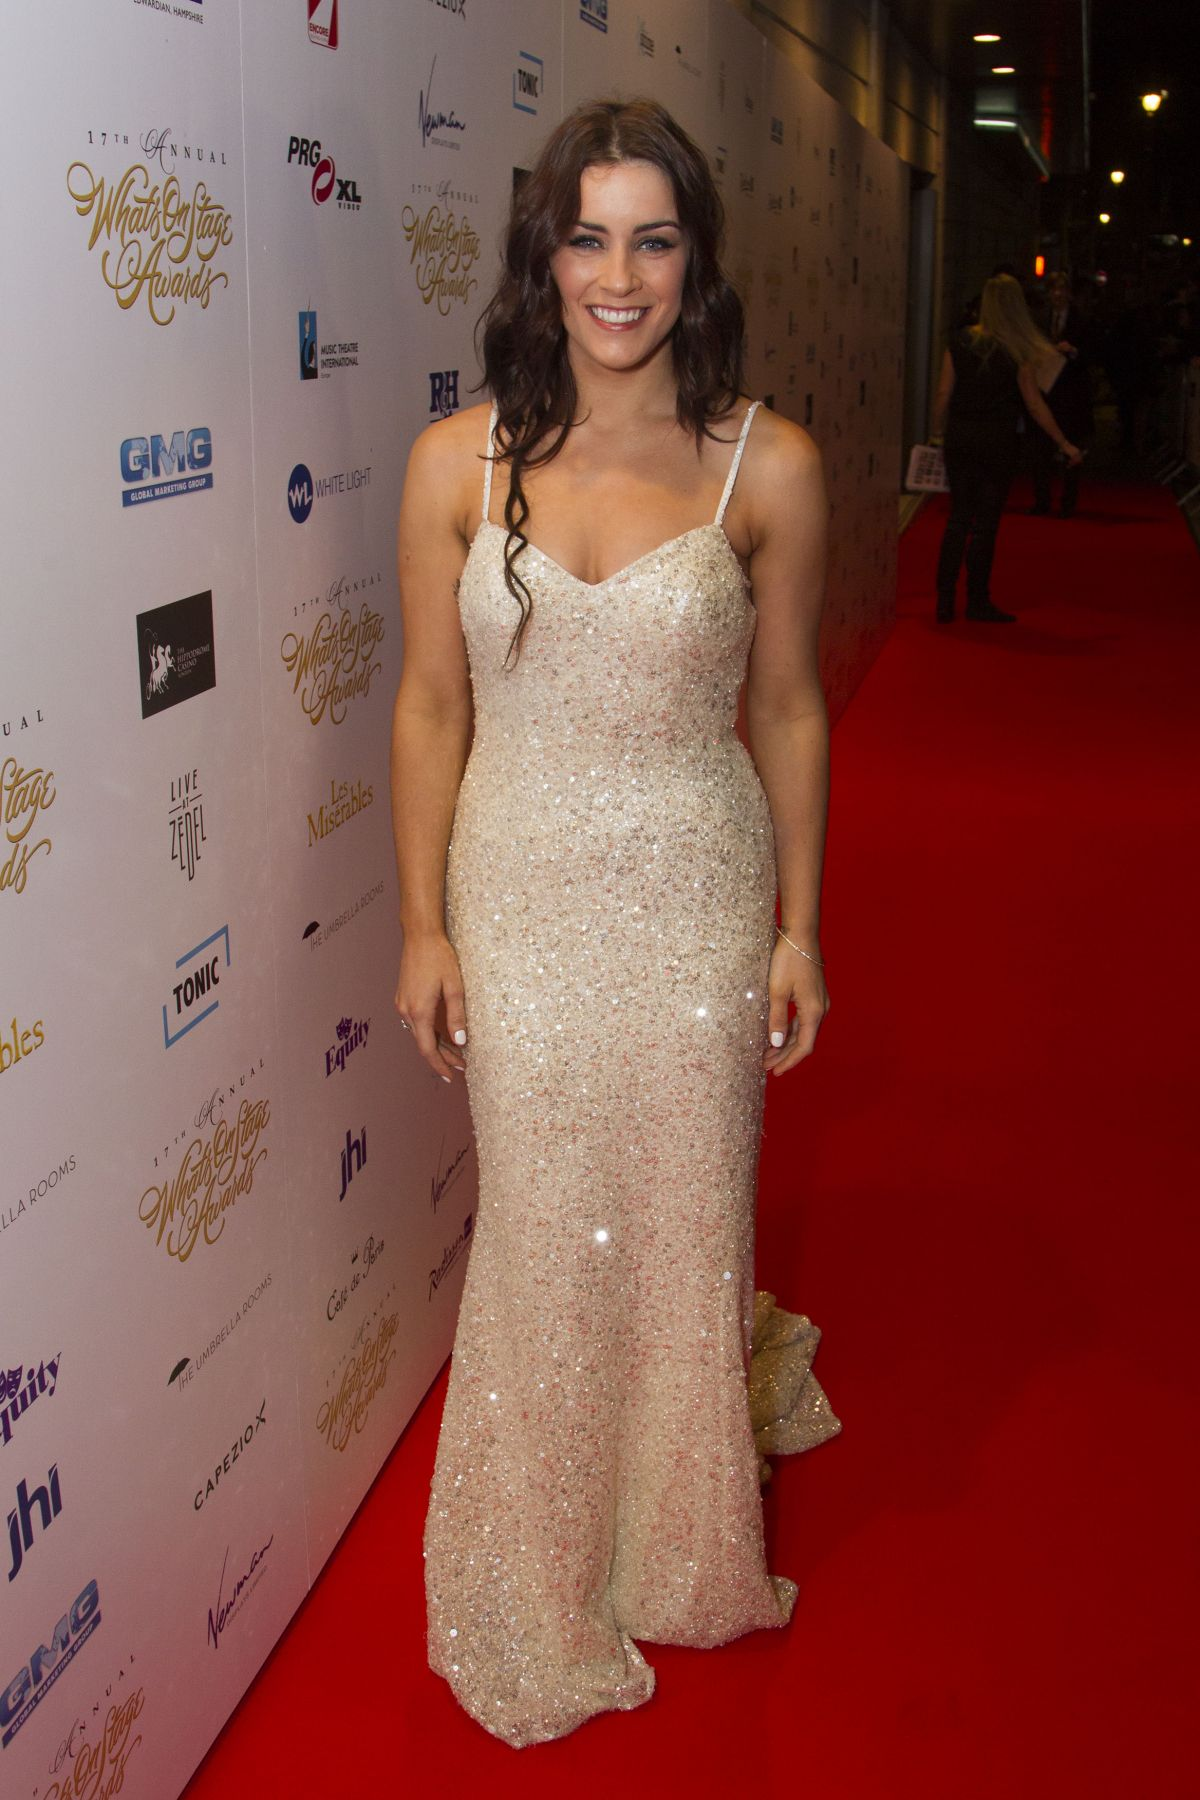 LUCIE JONES at 2017 WhatsOnStage Awards Concert in London 02/19/2017